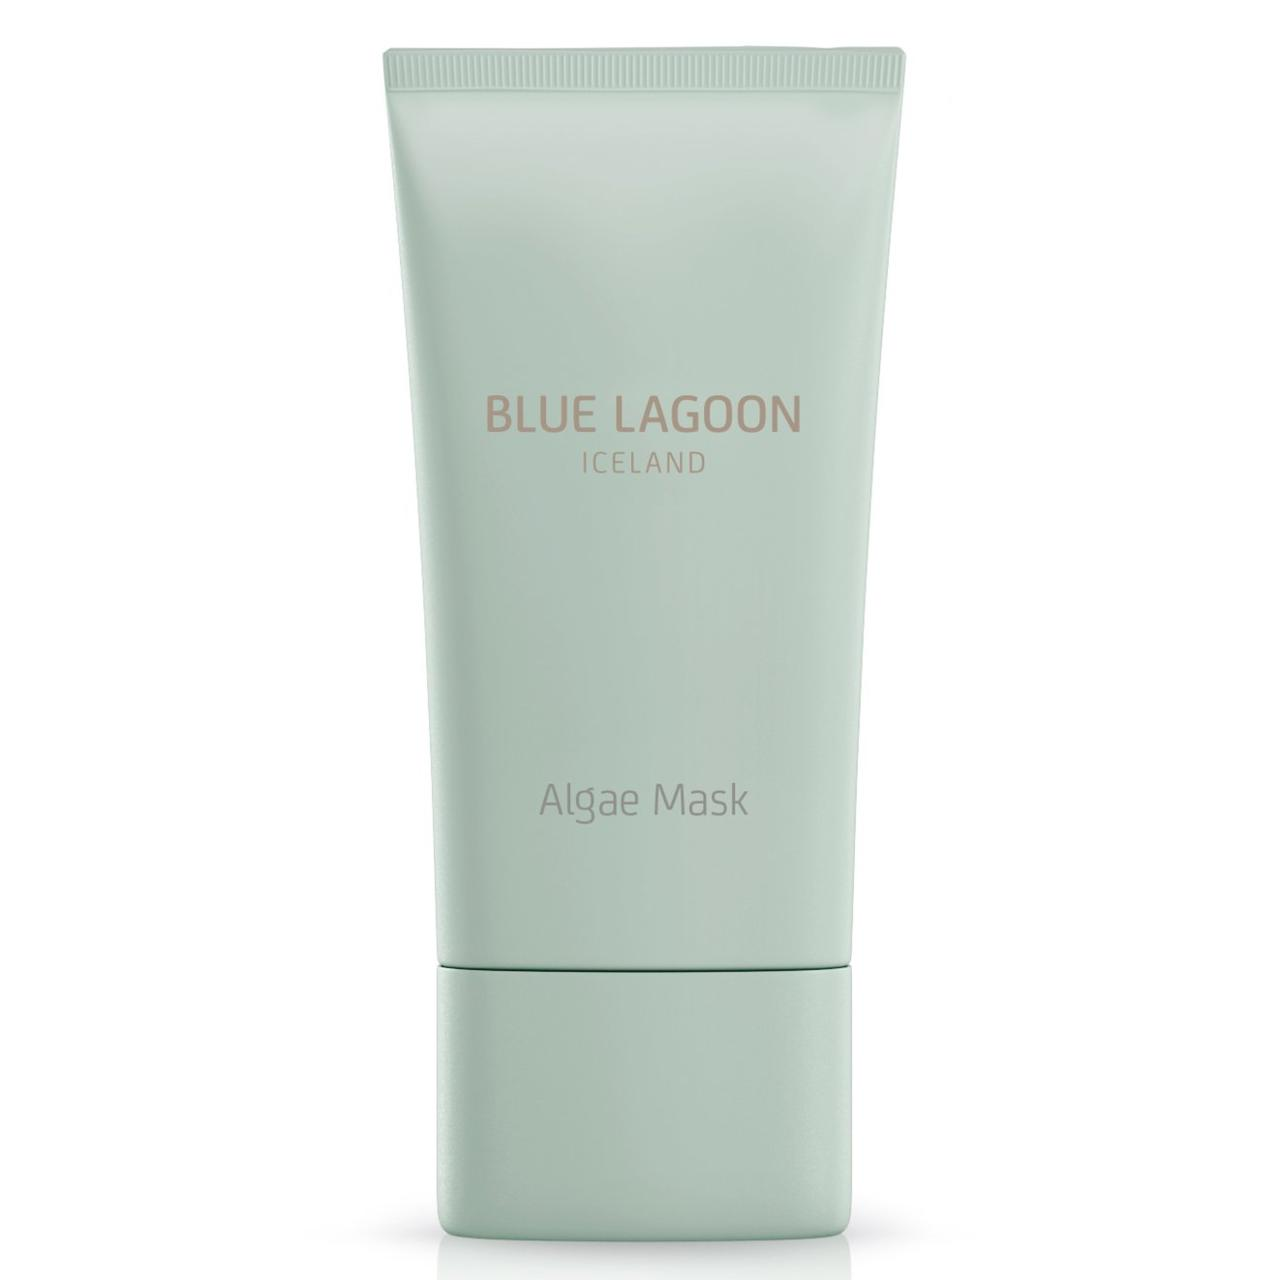 Blue Lagoon Algae Mask, 9.900 kr.